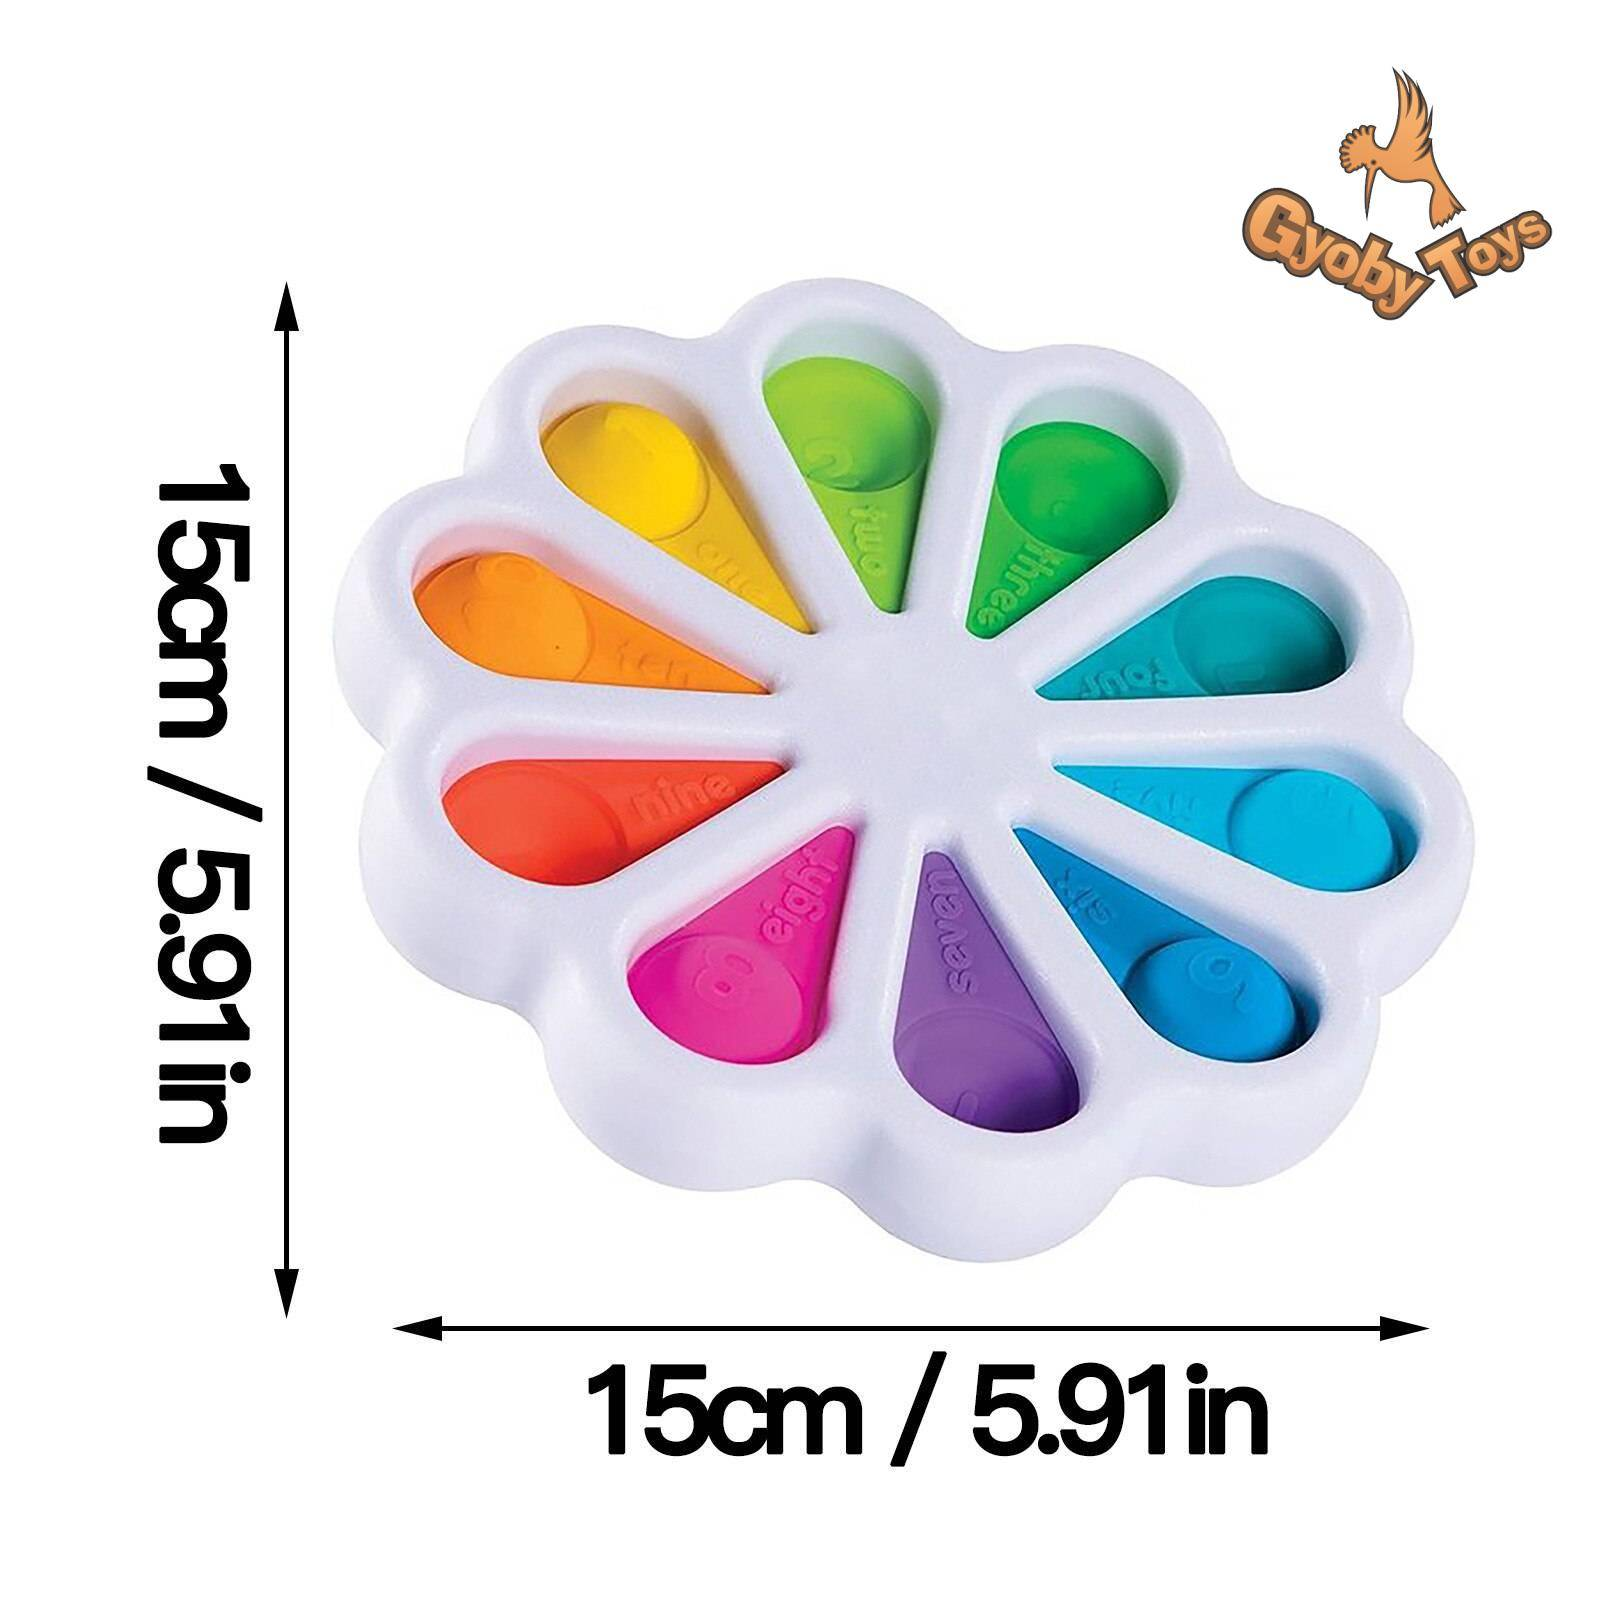 Simple Dimpl Digits Fidget Toy GYOBY® TOYS